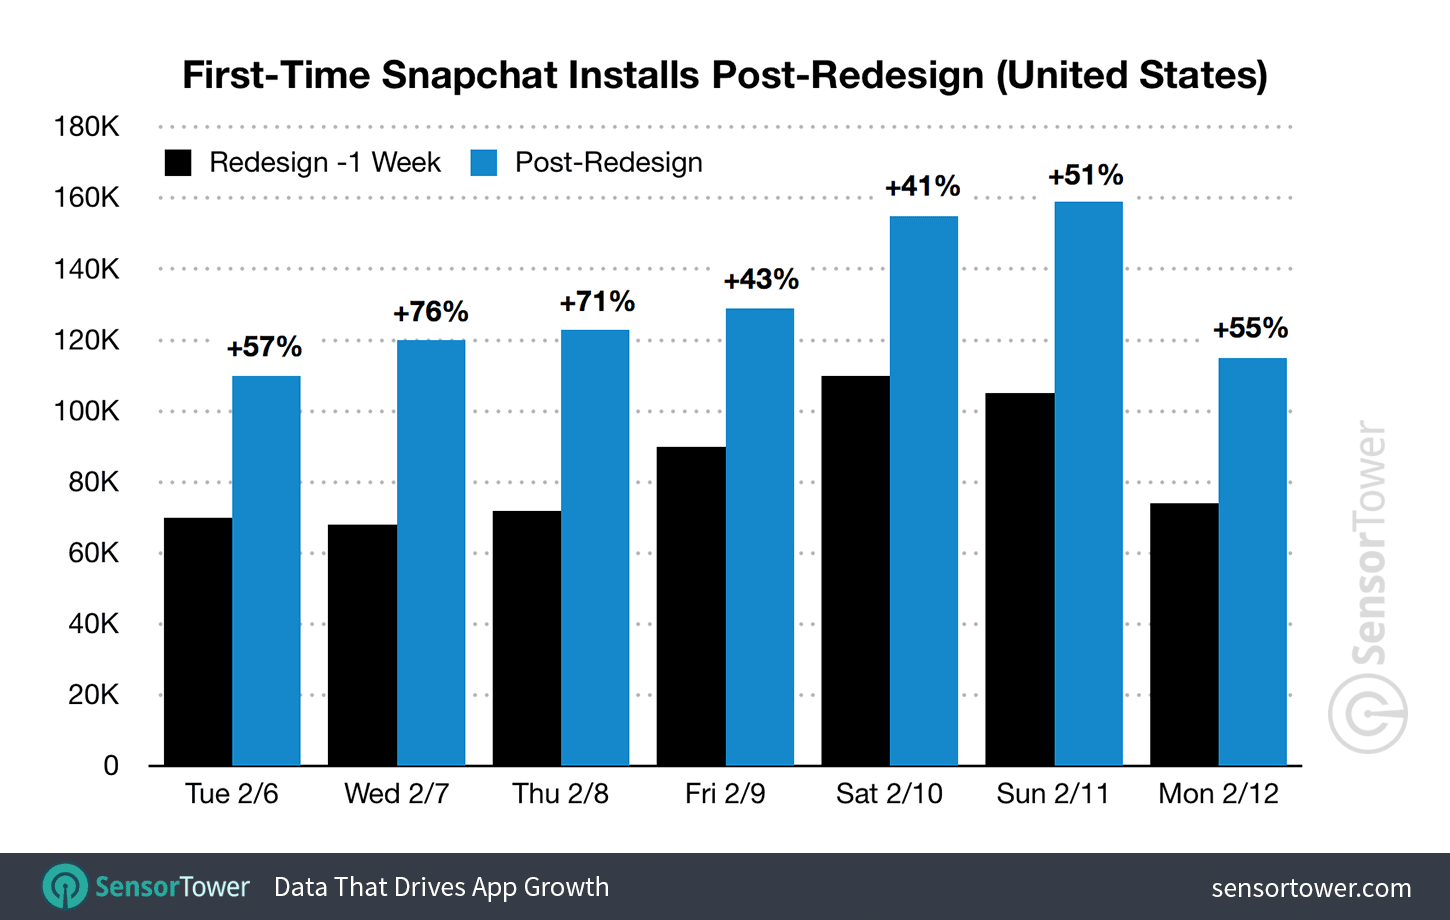 Post-Redesign Snapchat Downloads in the United States  - snapchat installs post redesign - First-Time U.S. Snapchat Installs Increase 55% Following the App's Redesign